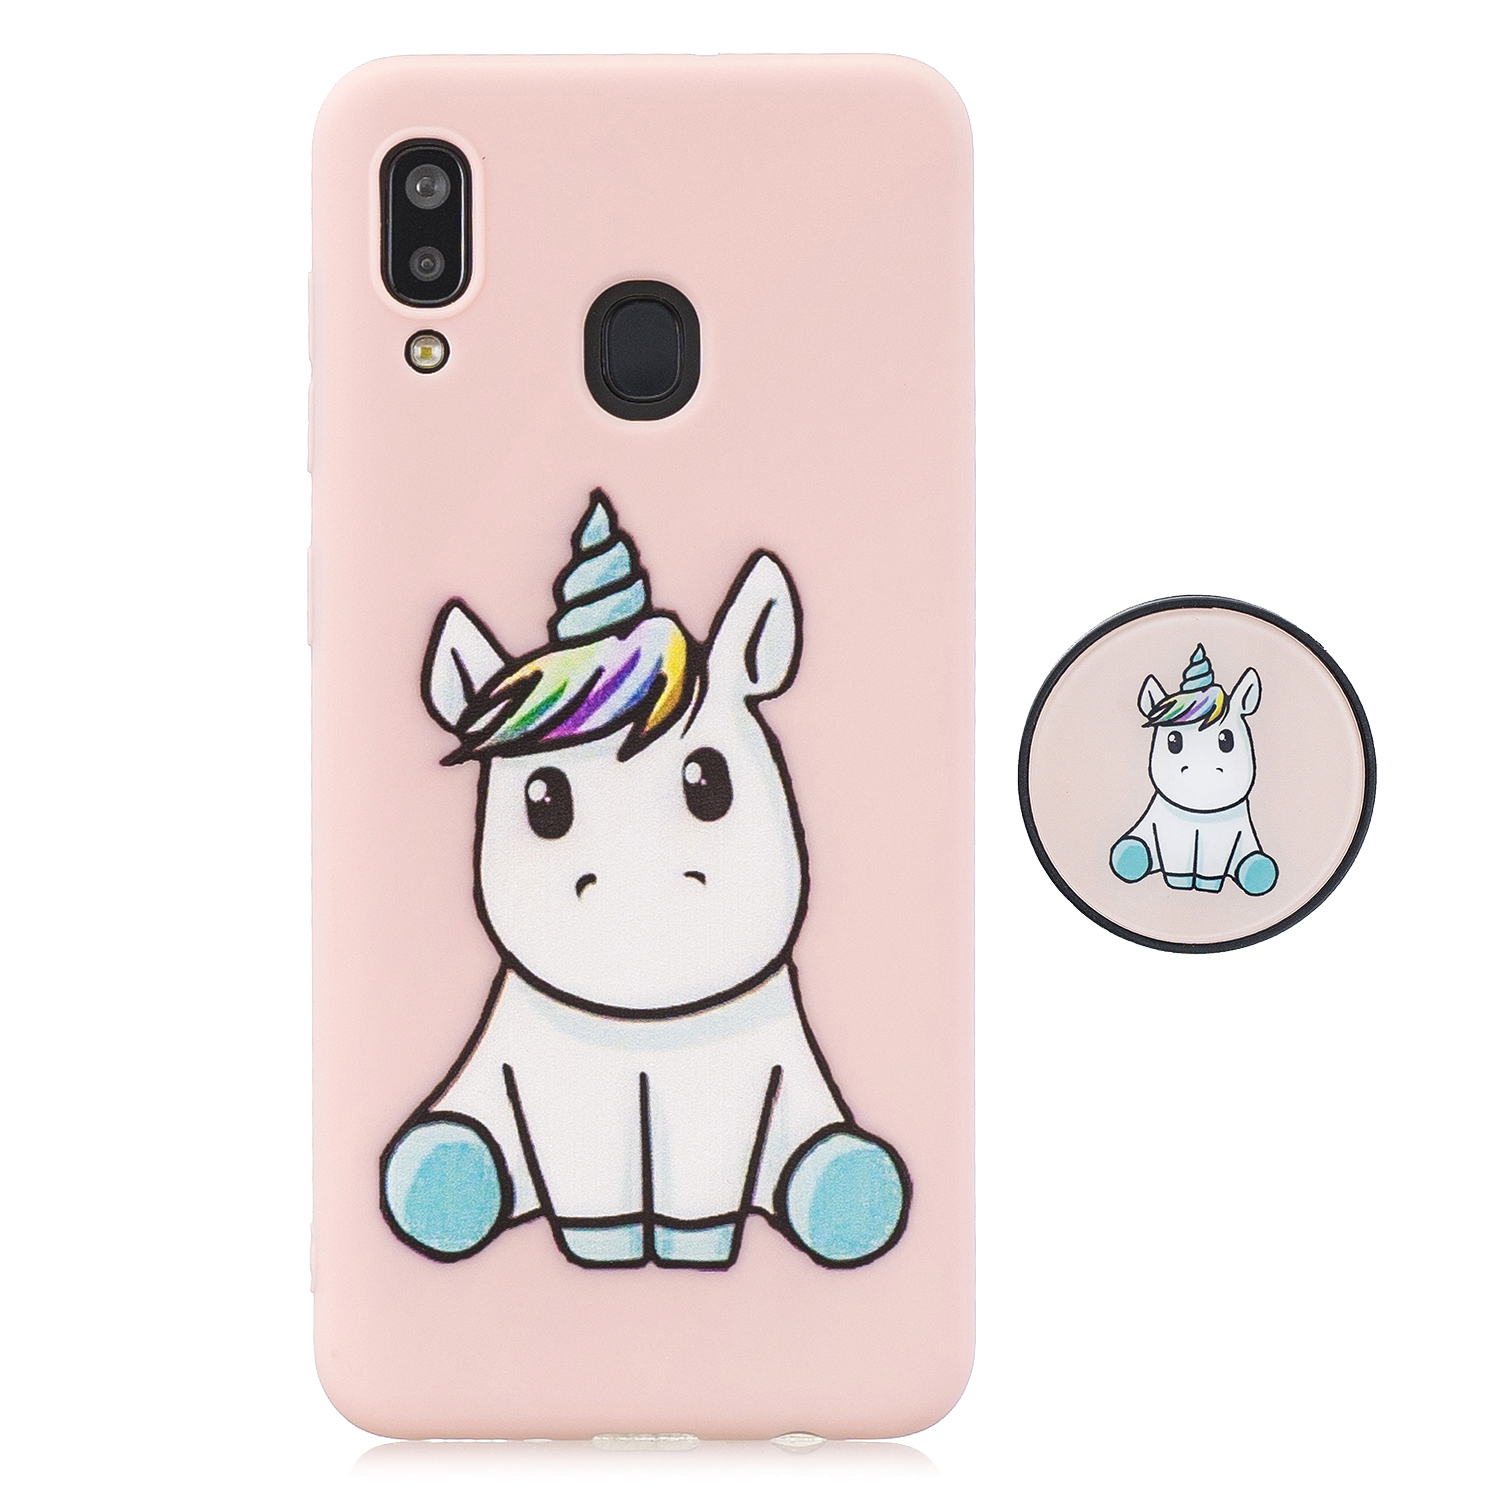 For Samsung A30 A20 TPU Full Cover Cartoon Pattern Solid Color Protective Phone Case with Adjustable Bracket 6